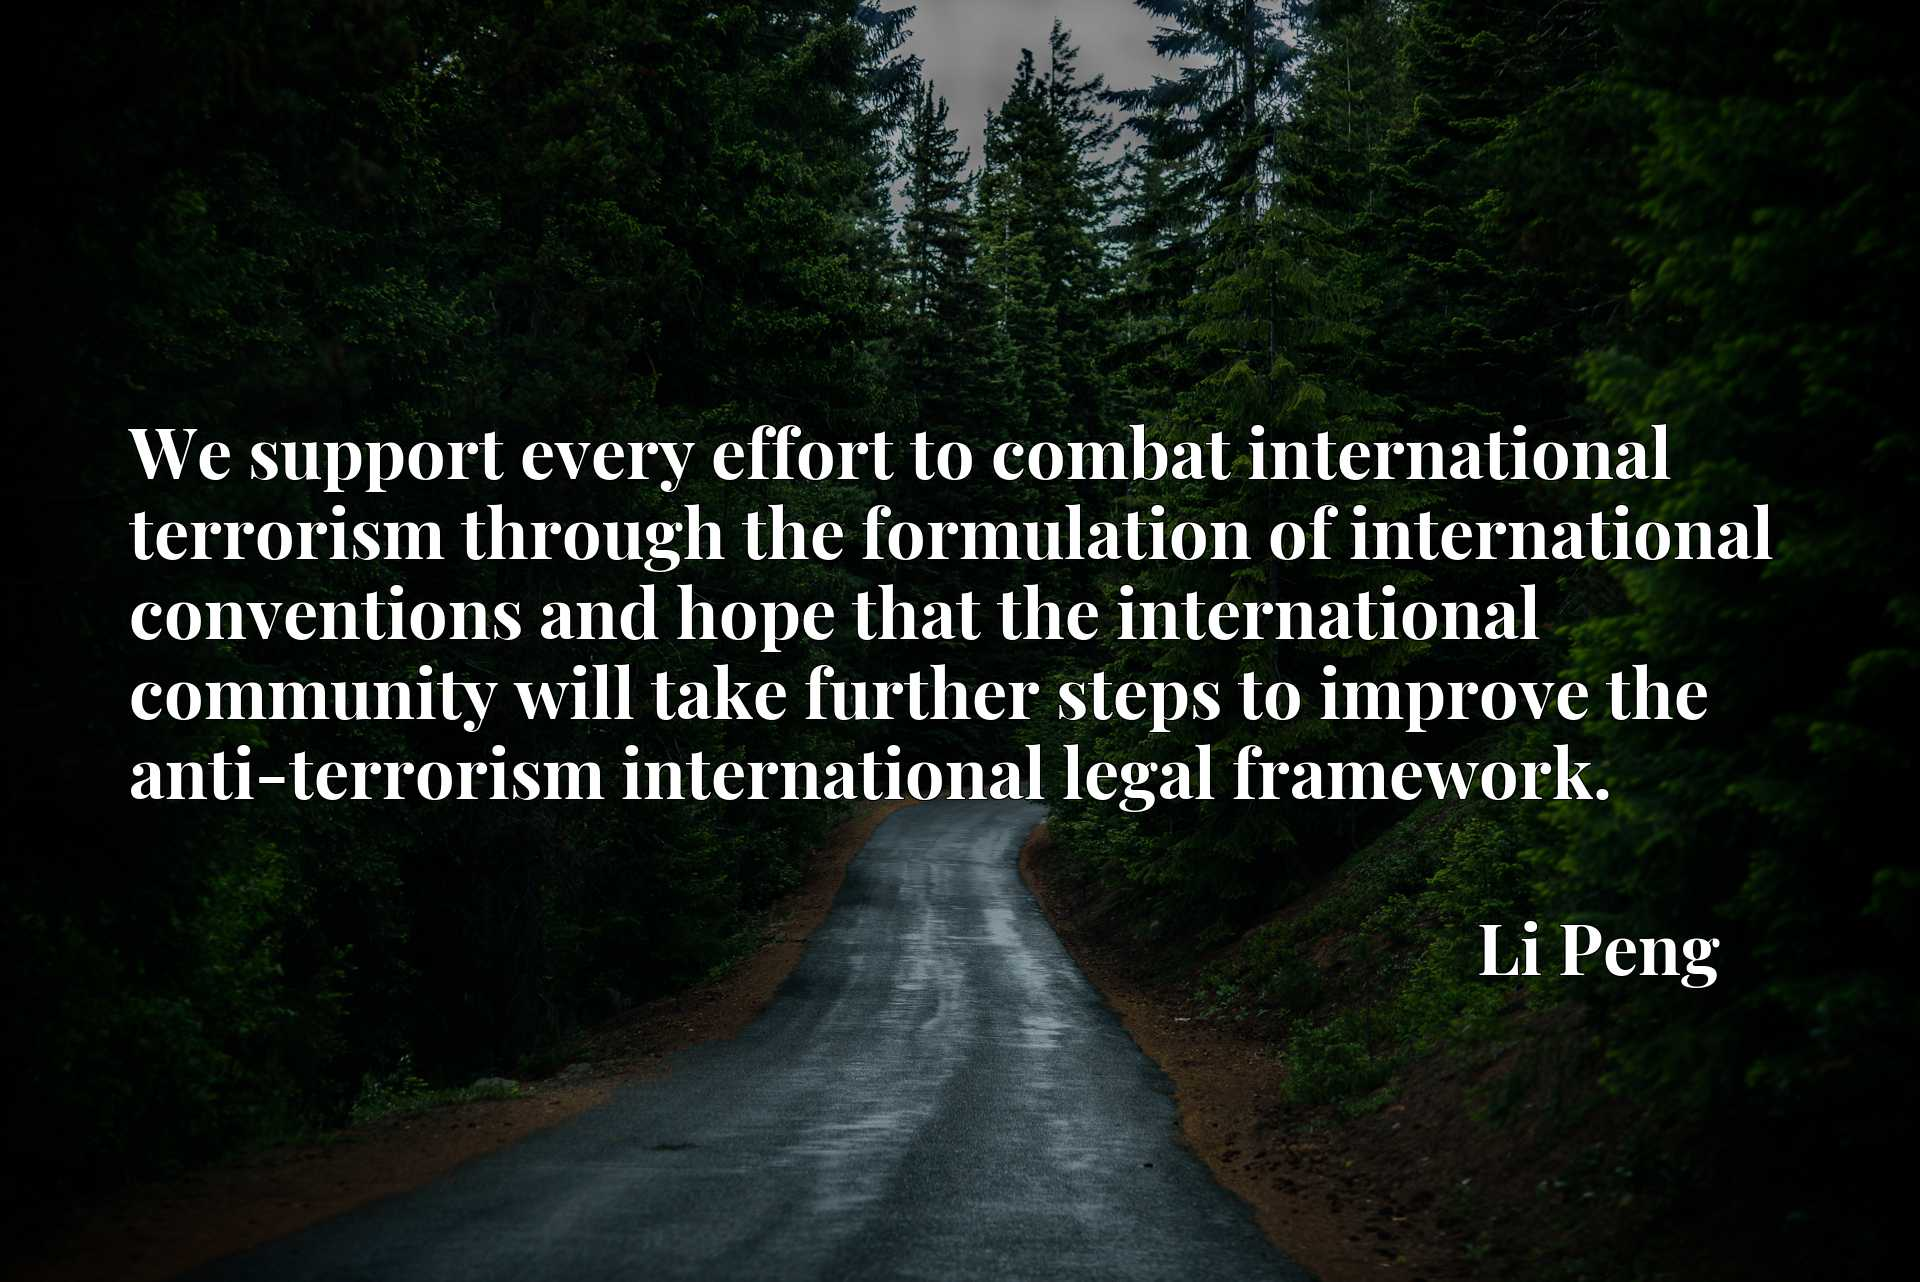 Quote Picture :We support every effort to combat international terrorism through the formulation of international conventions and hope that the international community will take further steps to improve the anti-terrorism international legal framework.